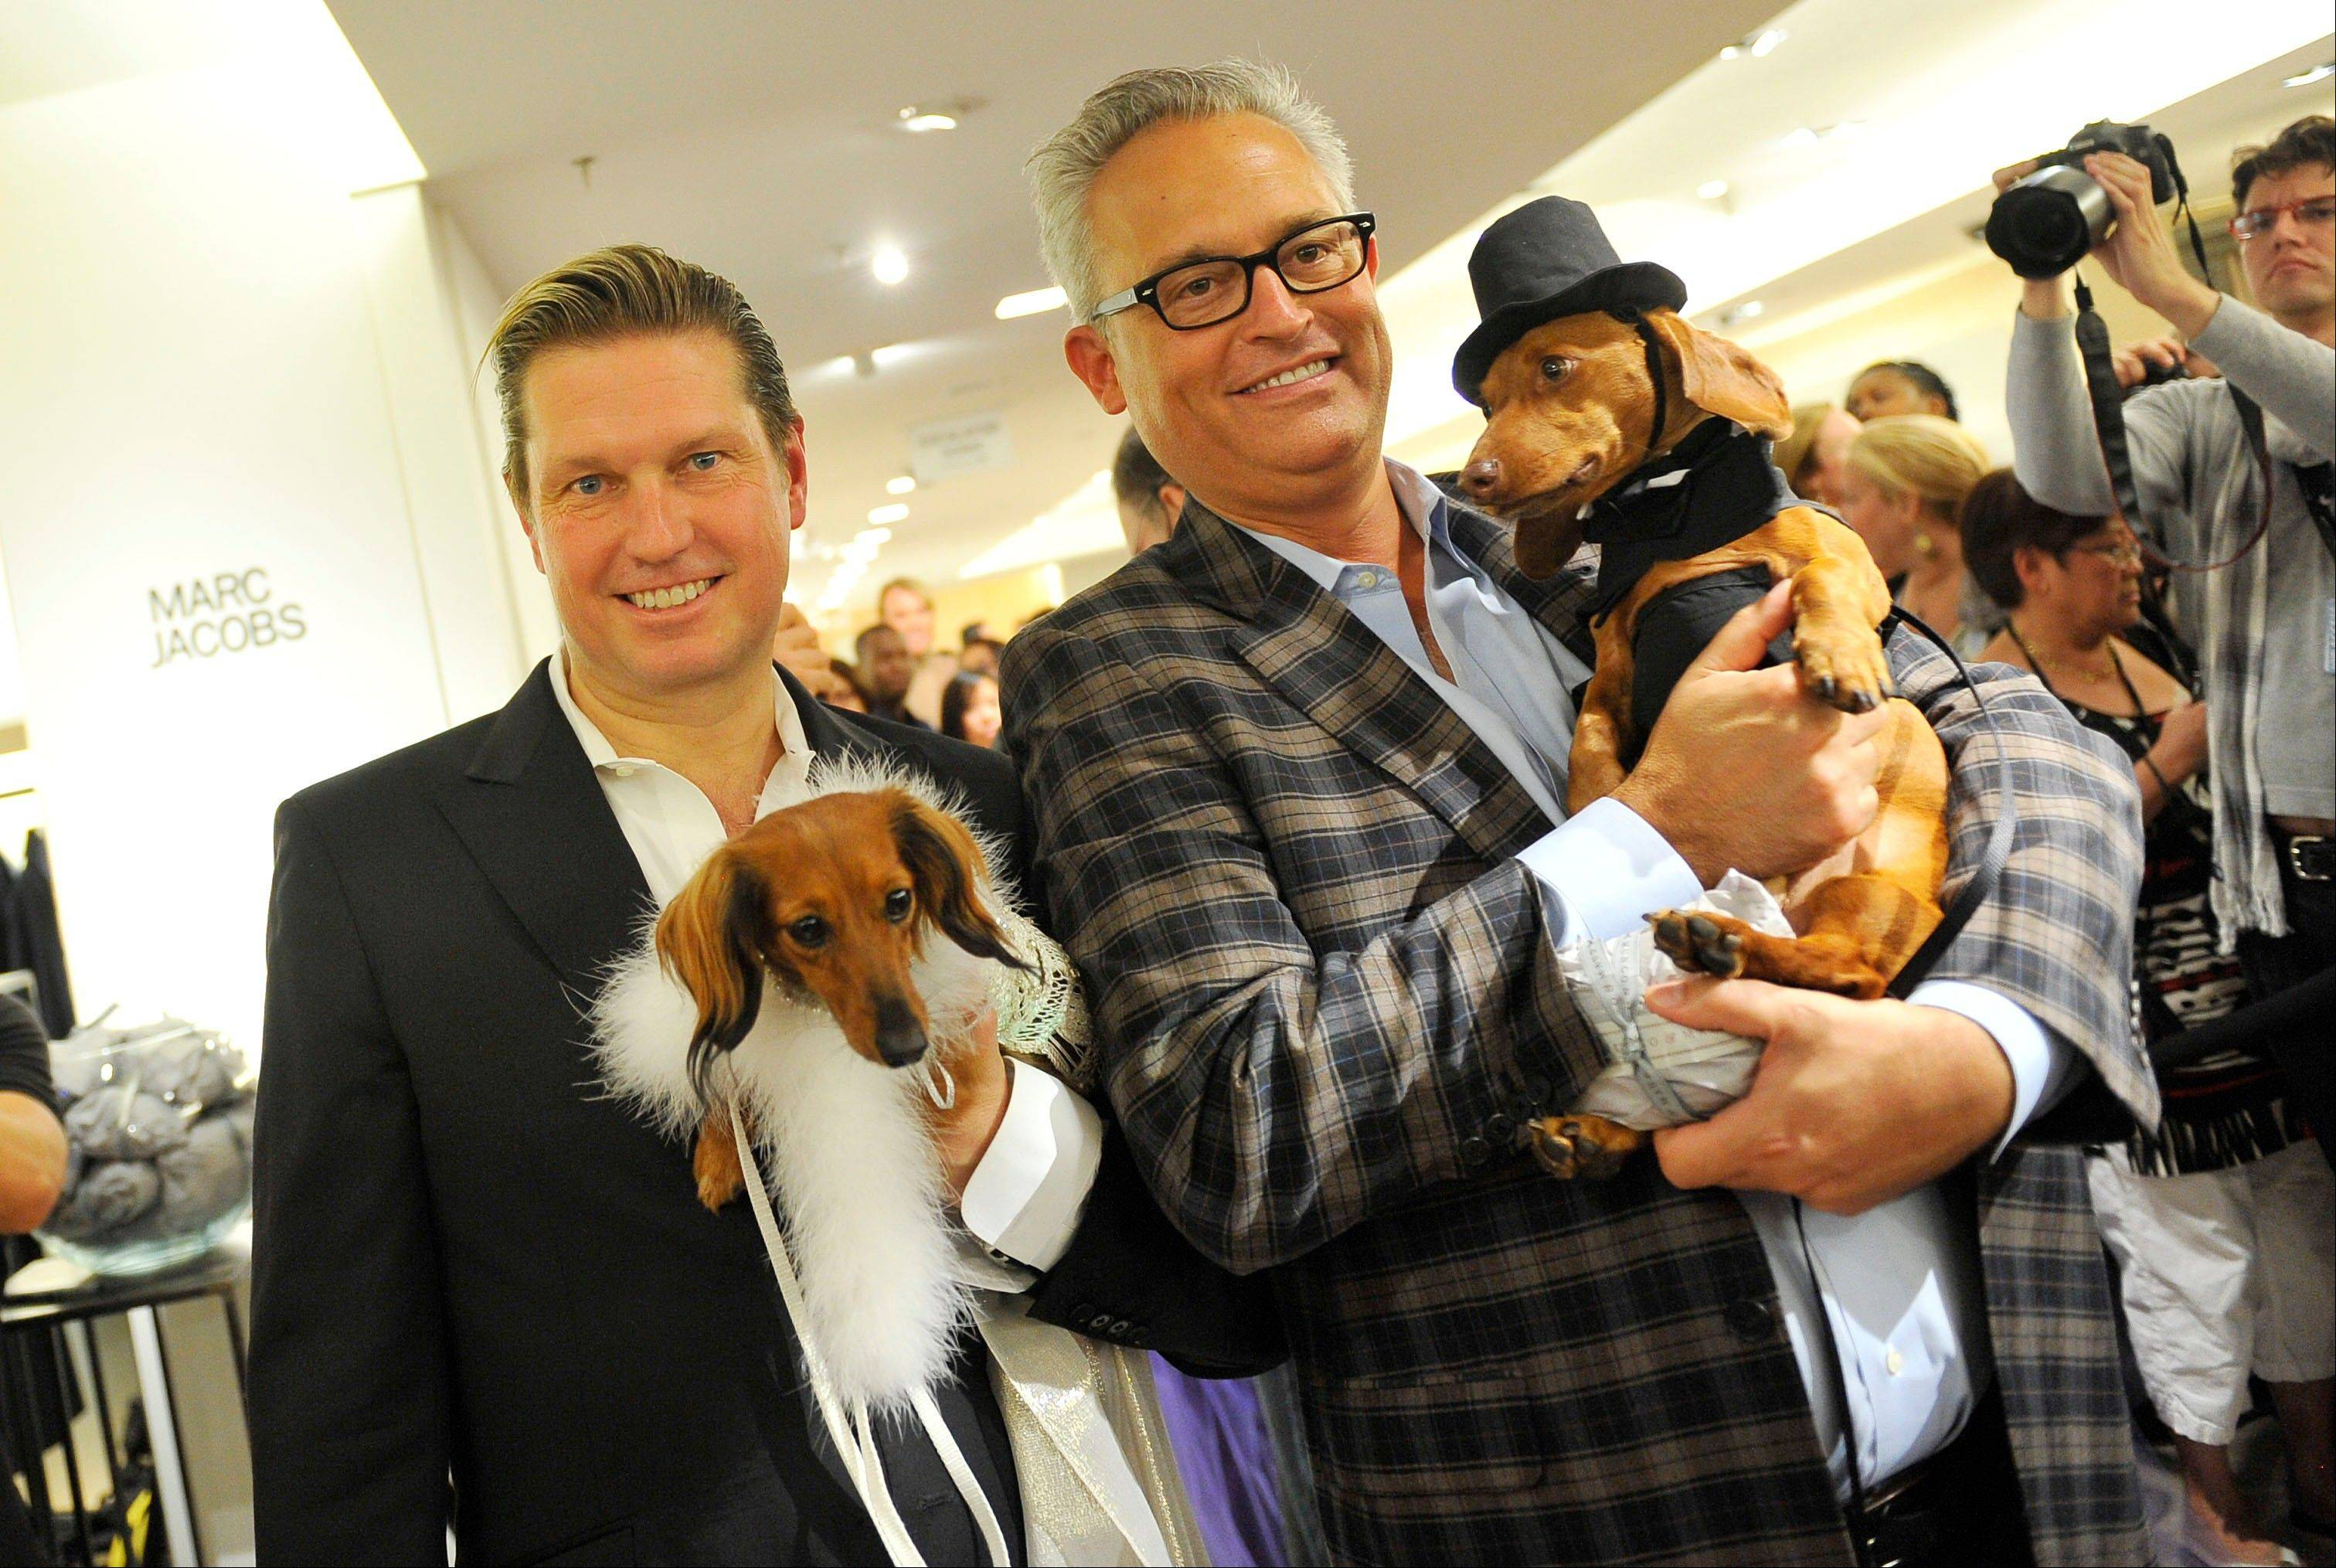 Designers Mark Badgley, left, and James Mischka hold their dogs Rommel and Whiskey during a doggie fashion show at Bergdorf Goodman during Fashion's Night Out during Fashion Week in New York. the shopping initiative driven by Vogue Editor-In-Chief Anna Wintour, returns as a bigger event next month, extending to 250 U.S. cities, but there seems to be a sharper focus on industry stars -- including designers, red carpet experts and makeup artists -- instead of the Hollywood celebrities who grabbed headlines the past two years.